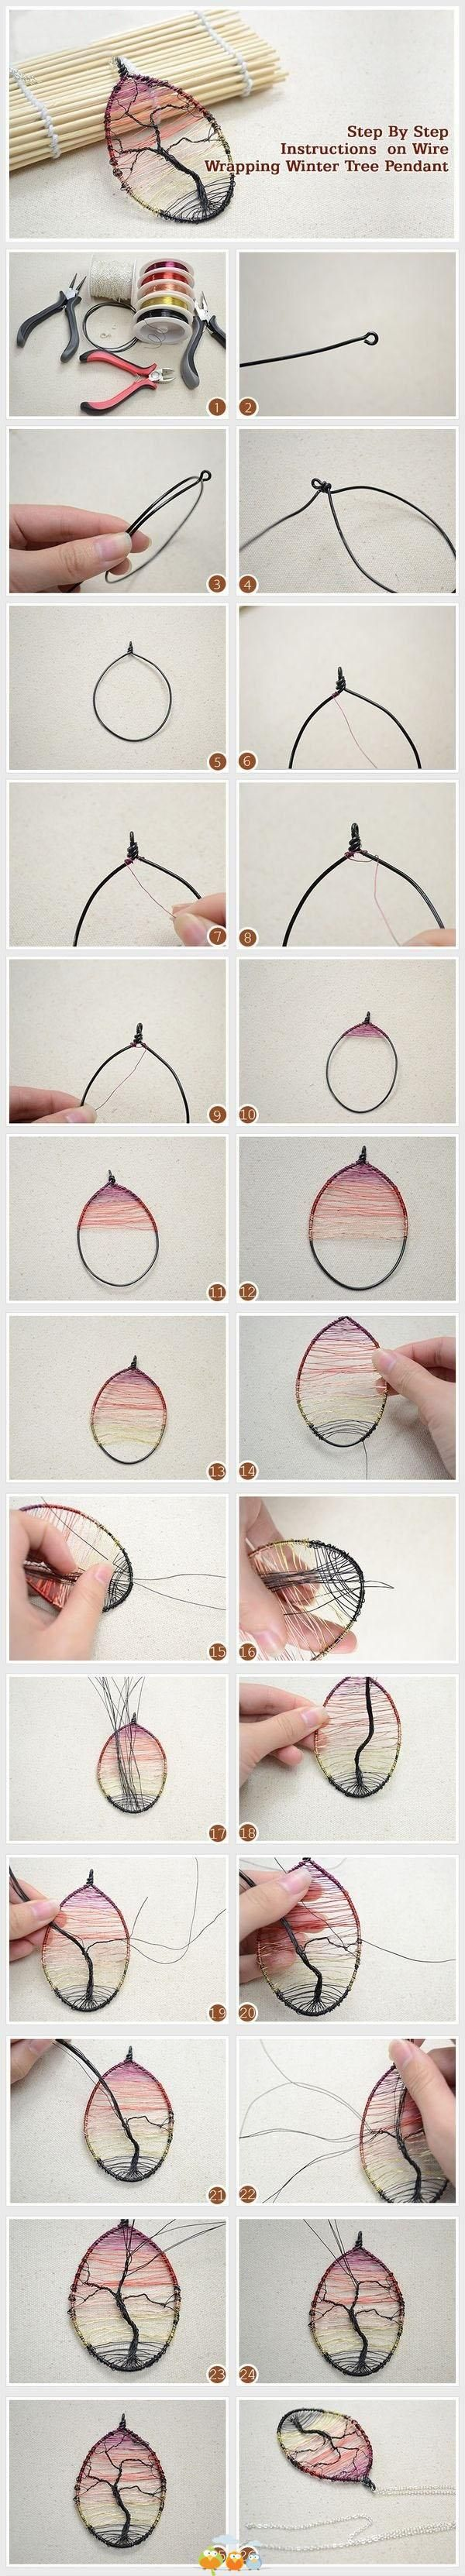 marble necklaces homemade step by step instructions